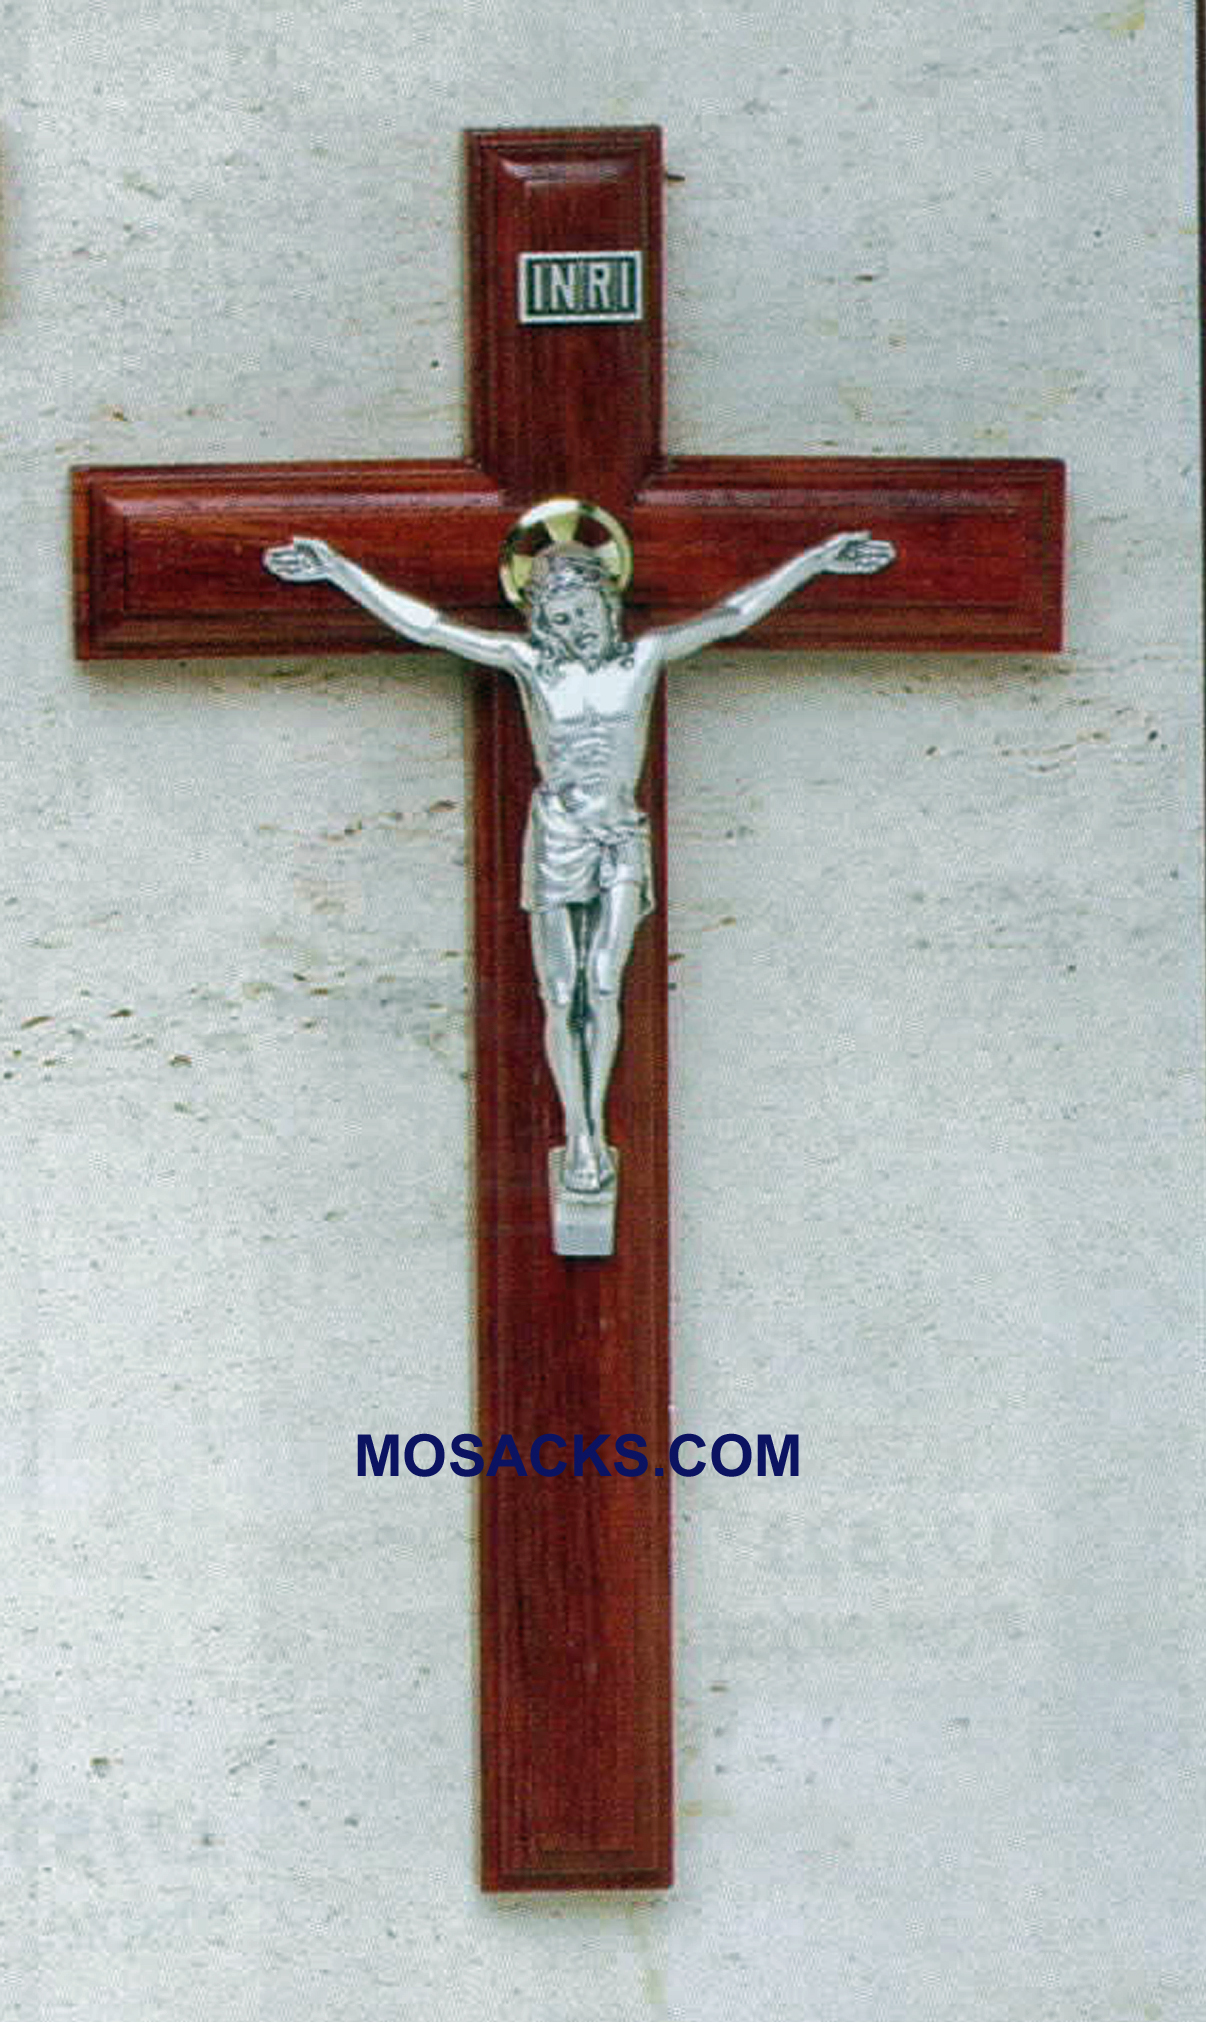 Rosewood Crucifix with Salerni Corpus 9 inch 17/426